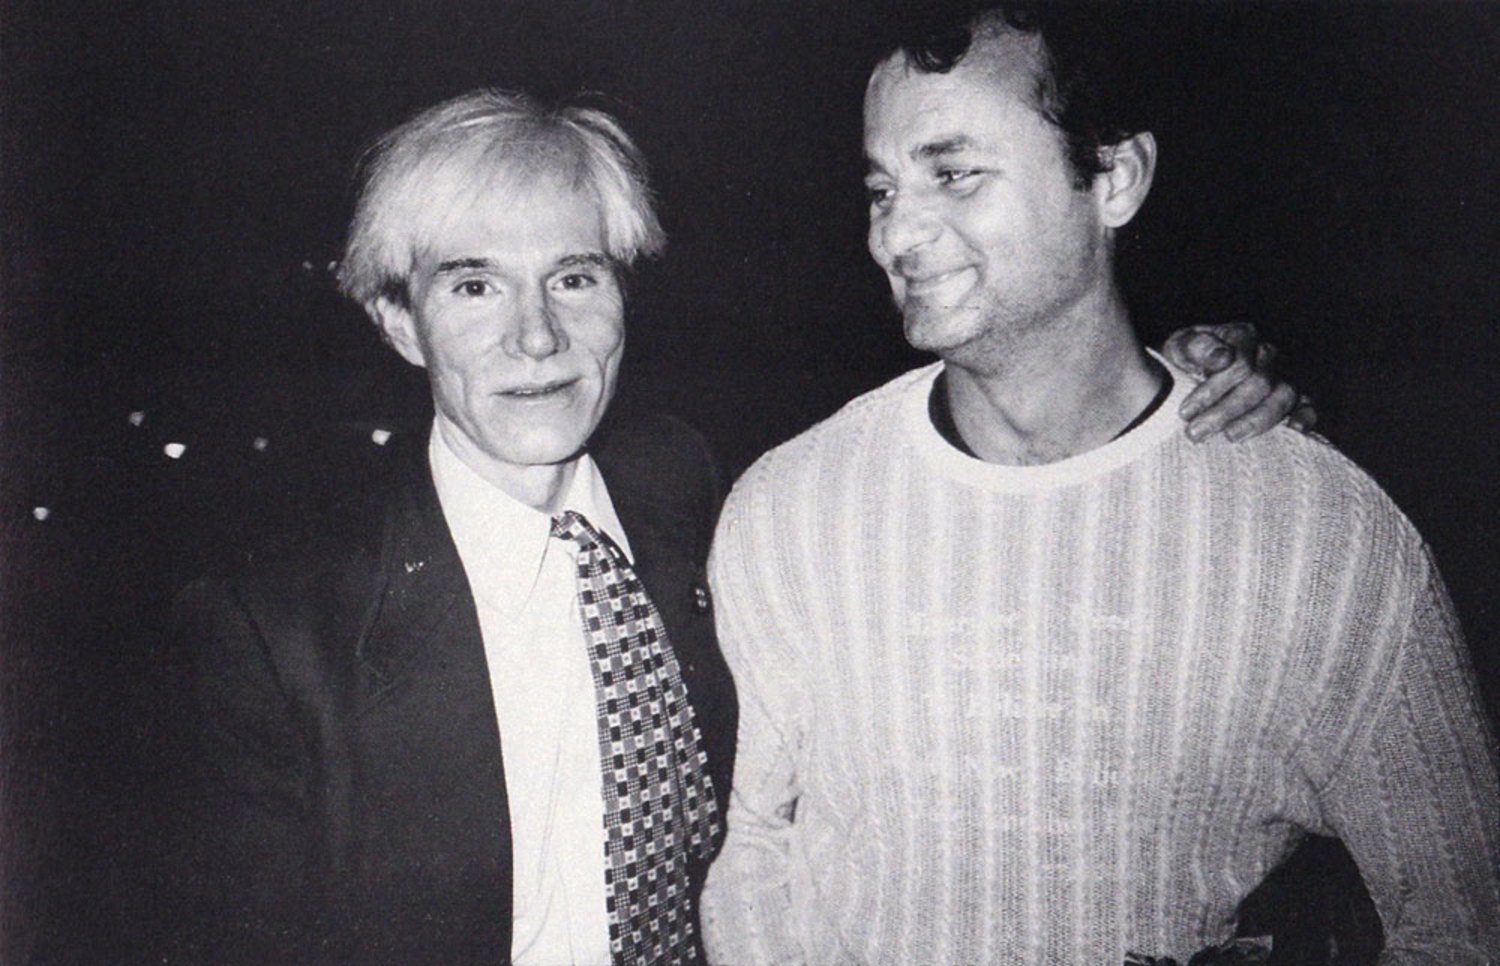 Bill Murray and Andy Warhol, 1981  |  Photo by Christopher Makos